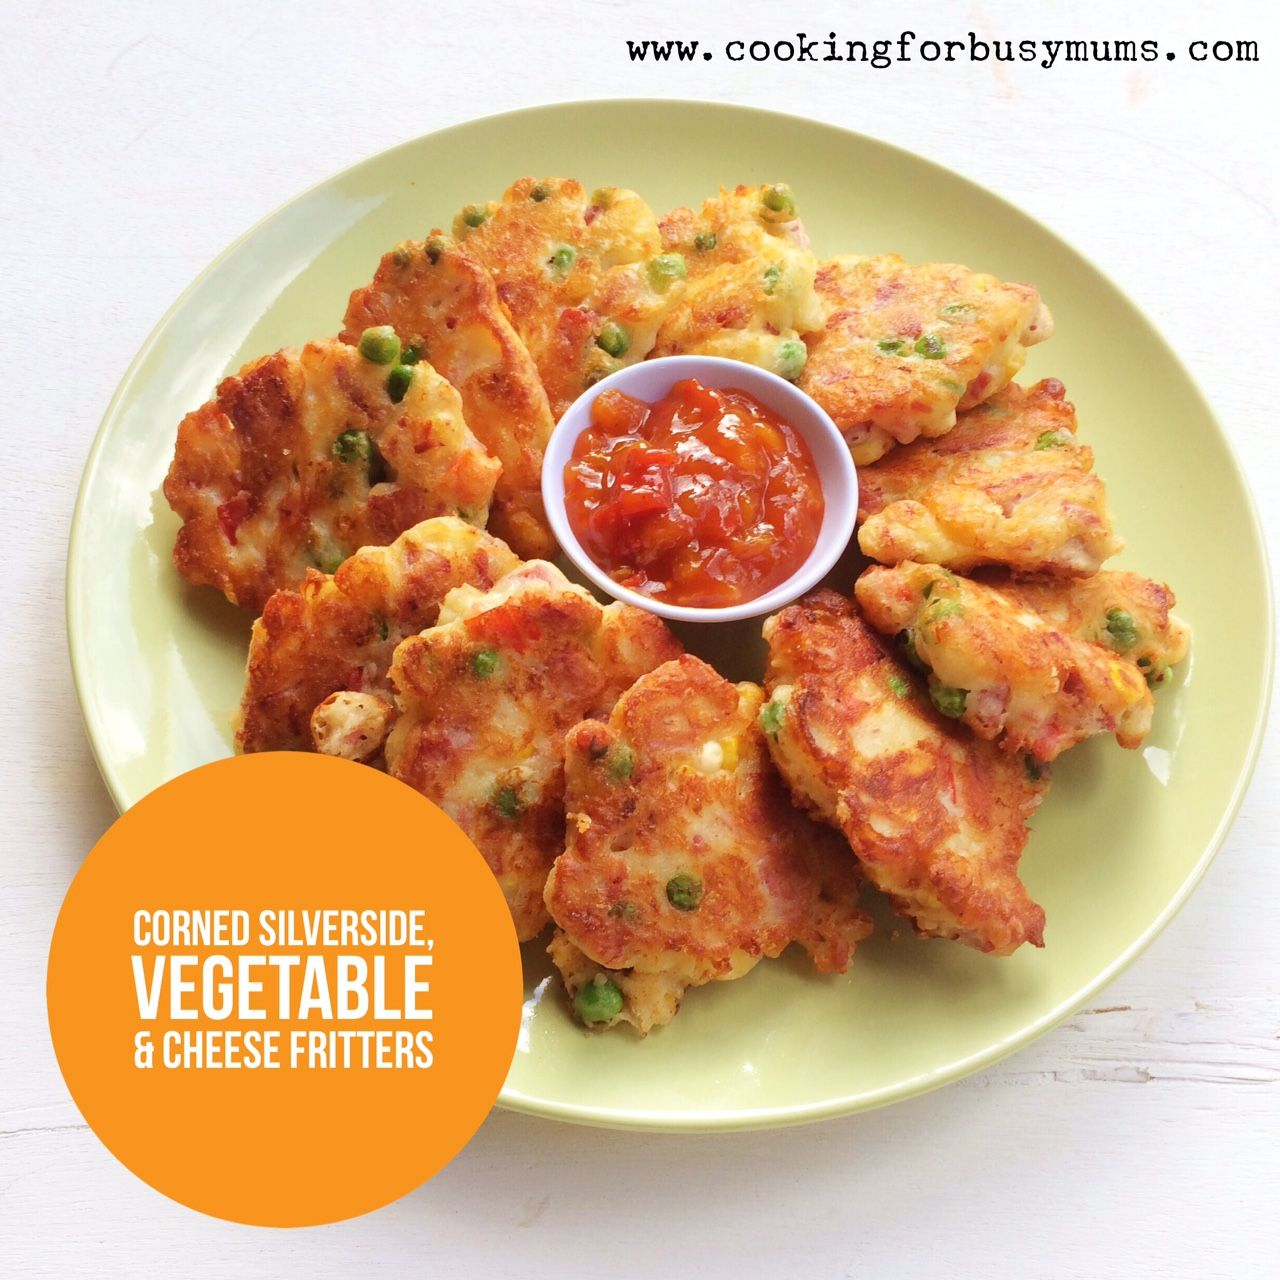 Corned Silverside, Vegetable and Cheese Fritters